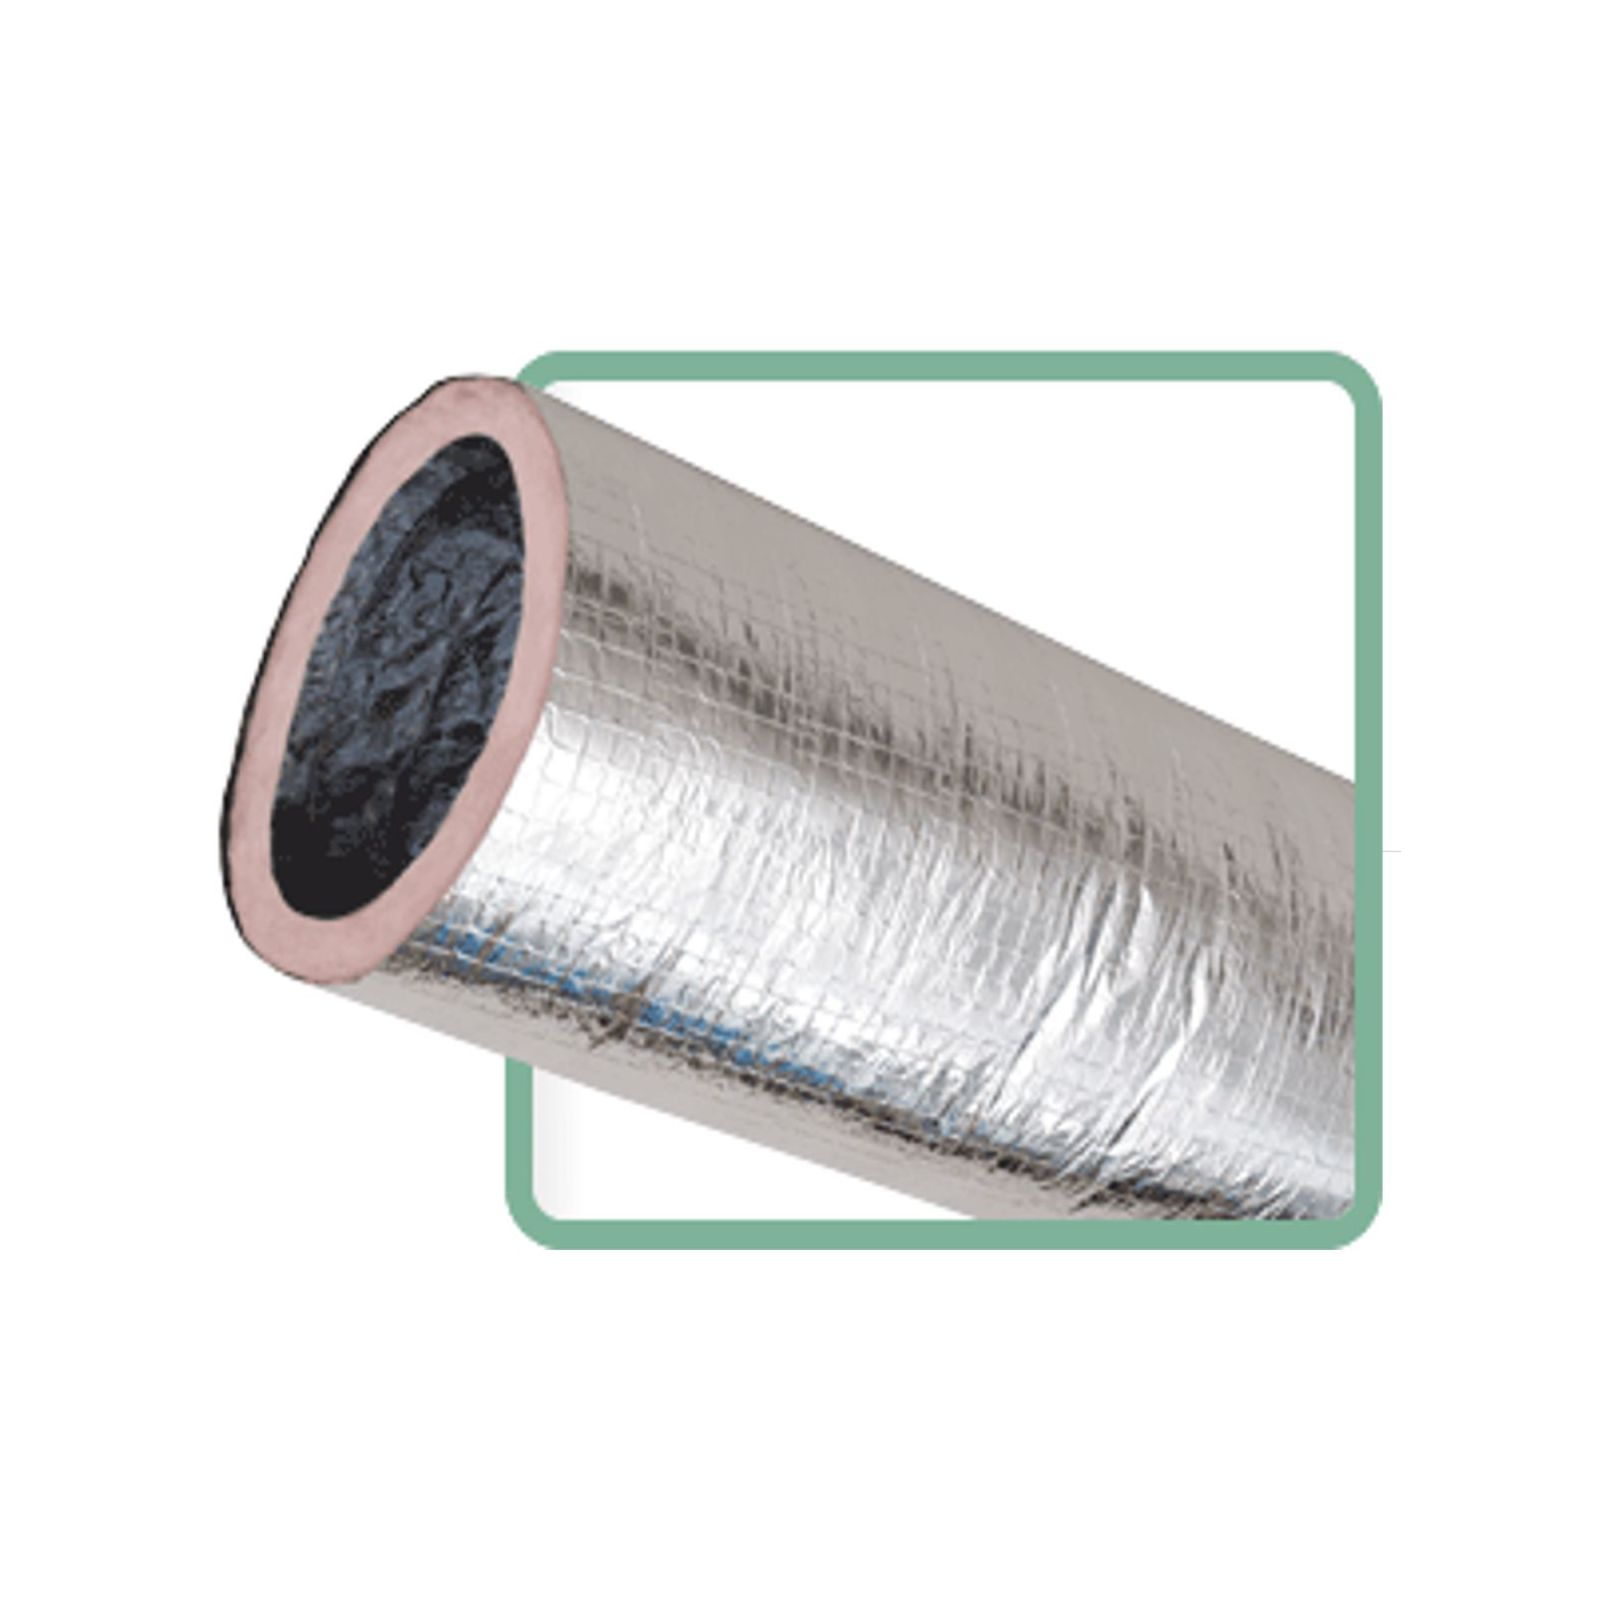 "Thermaflex 056308000004 - KM Silver Flex-Vent Insulated Flexible Air Duct, R8, 8"" X 50' Box"